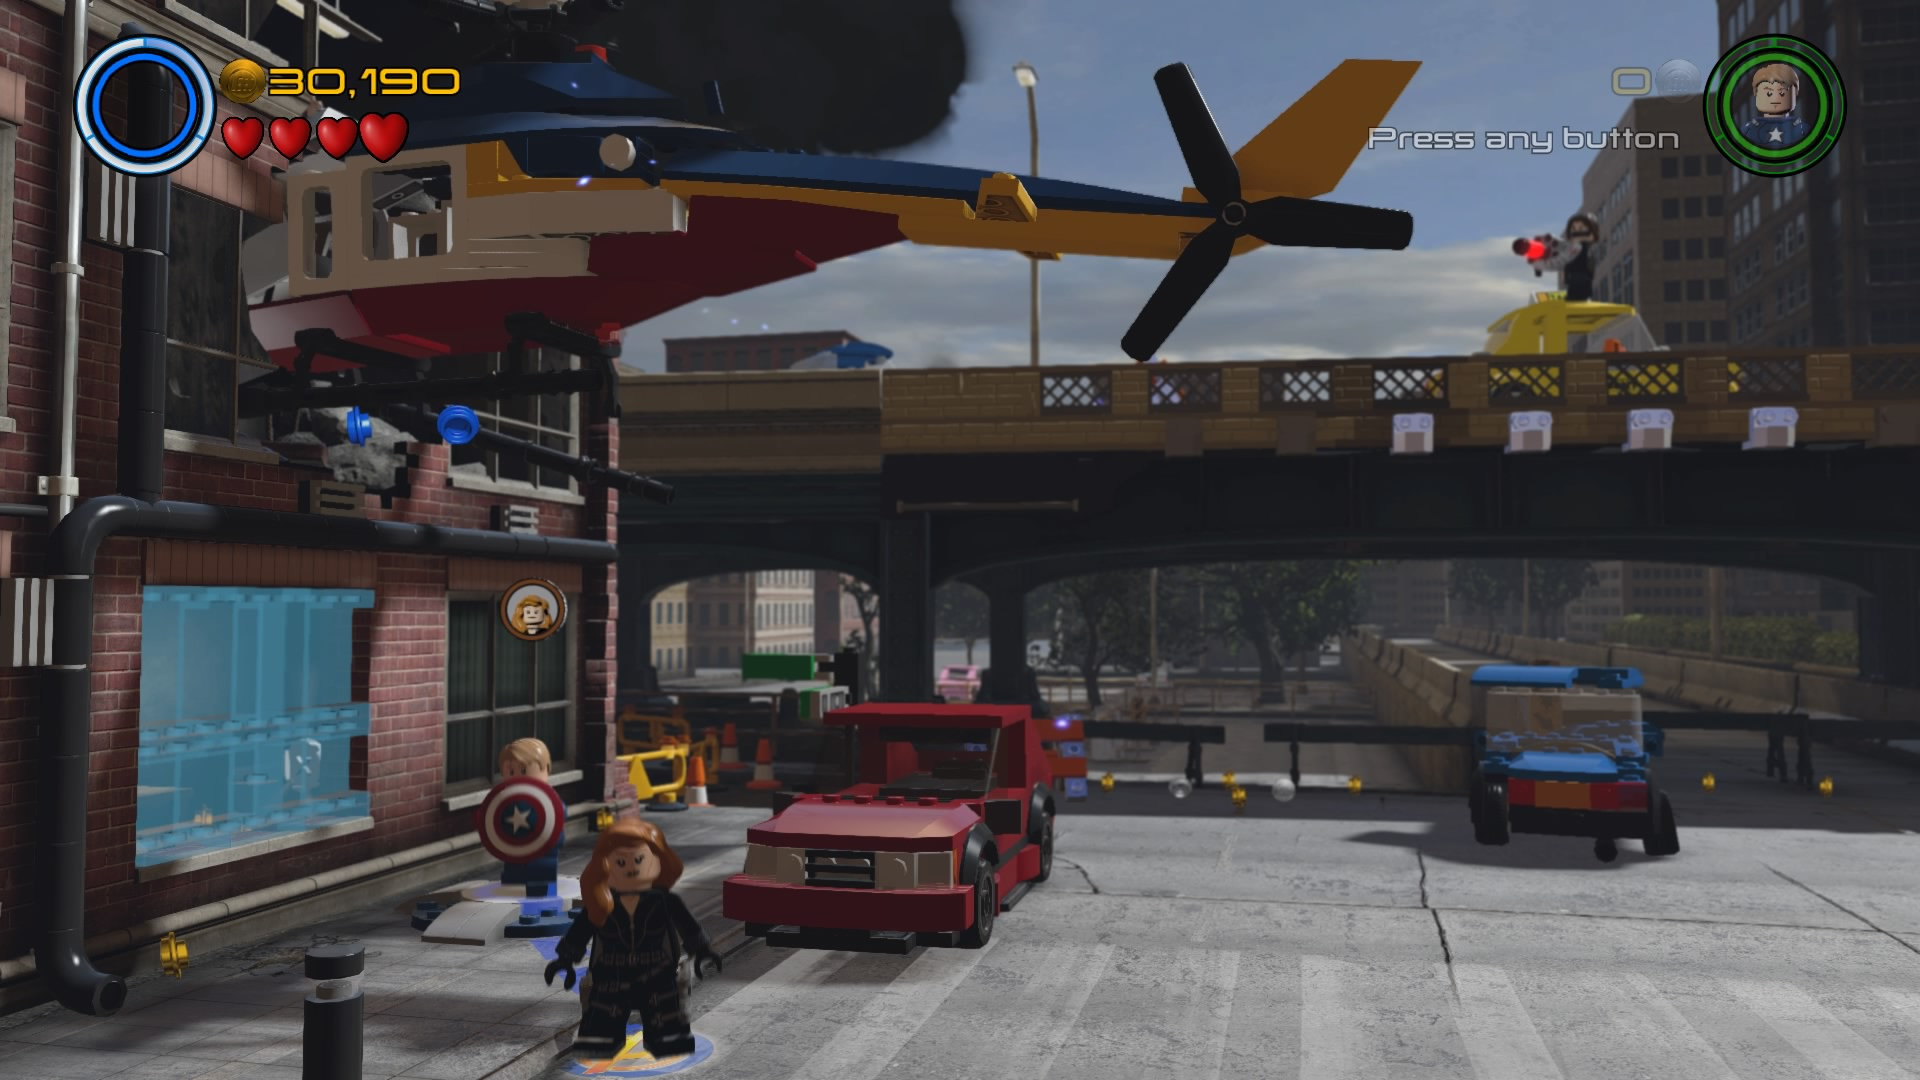 LEGO Marvels Avengers Walkthrough Walkthroughs The Escapist - Giant lego vehicles have been appearing on the streets of ancient rome